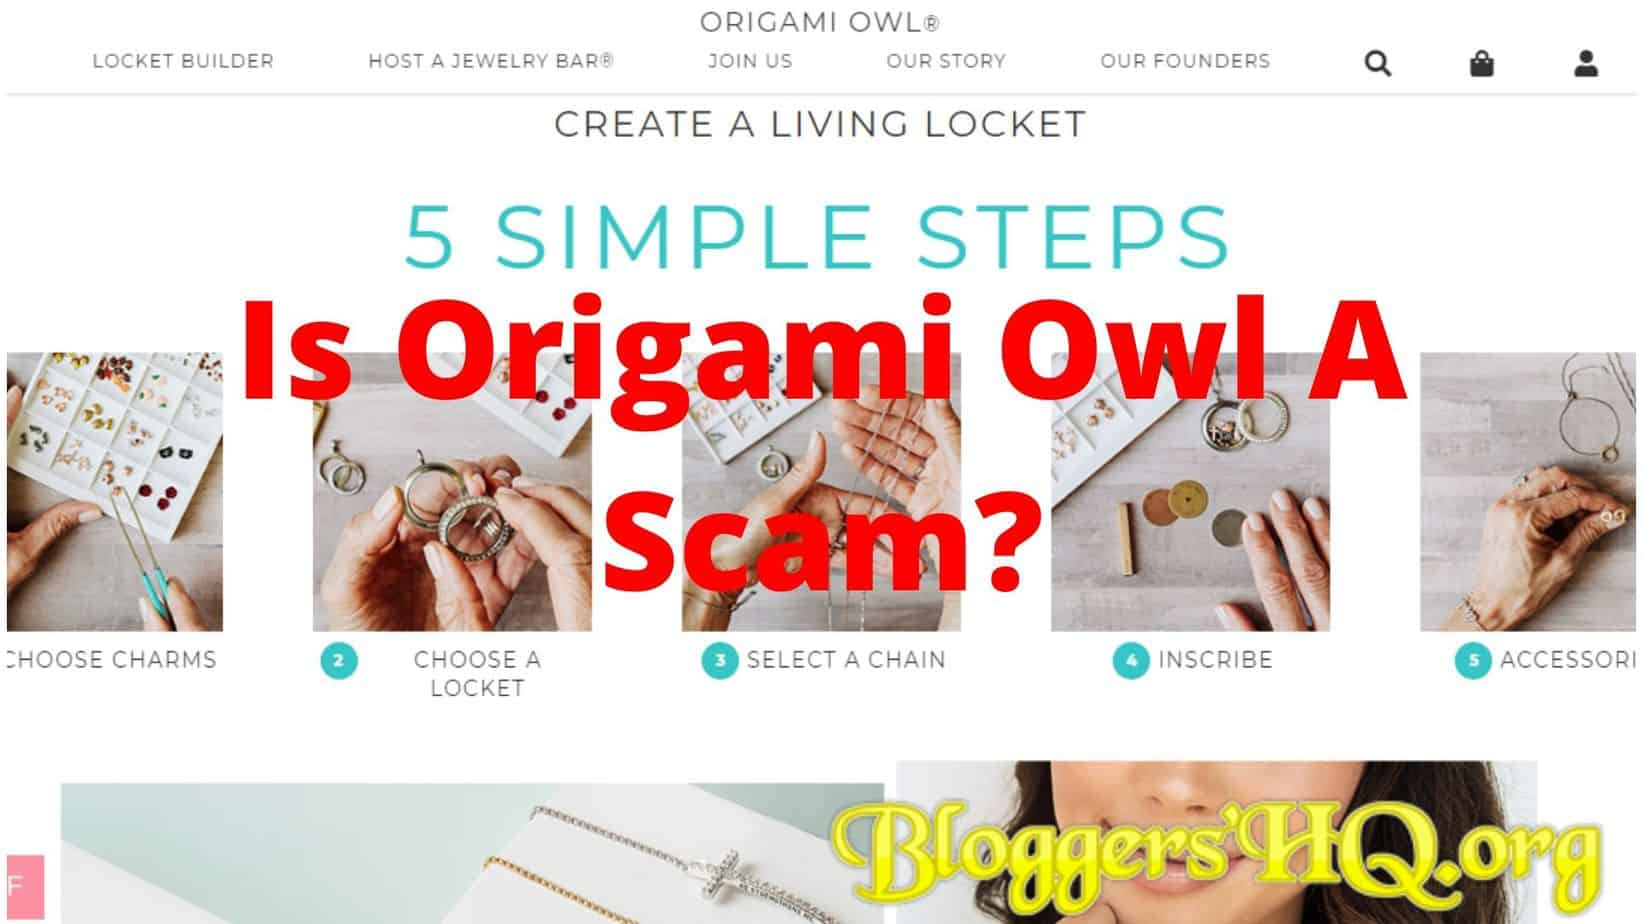 5 Secrets to Rock an Origami Owl Facebook Party | Origami owl ... | 924x1643